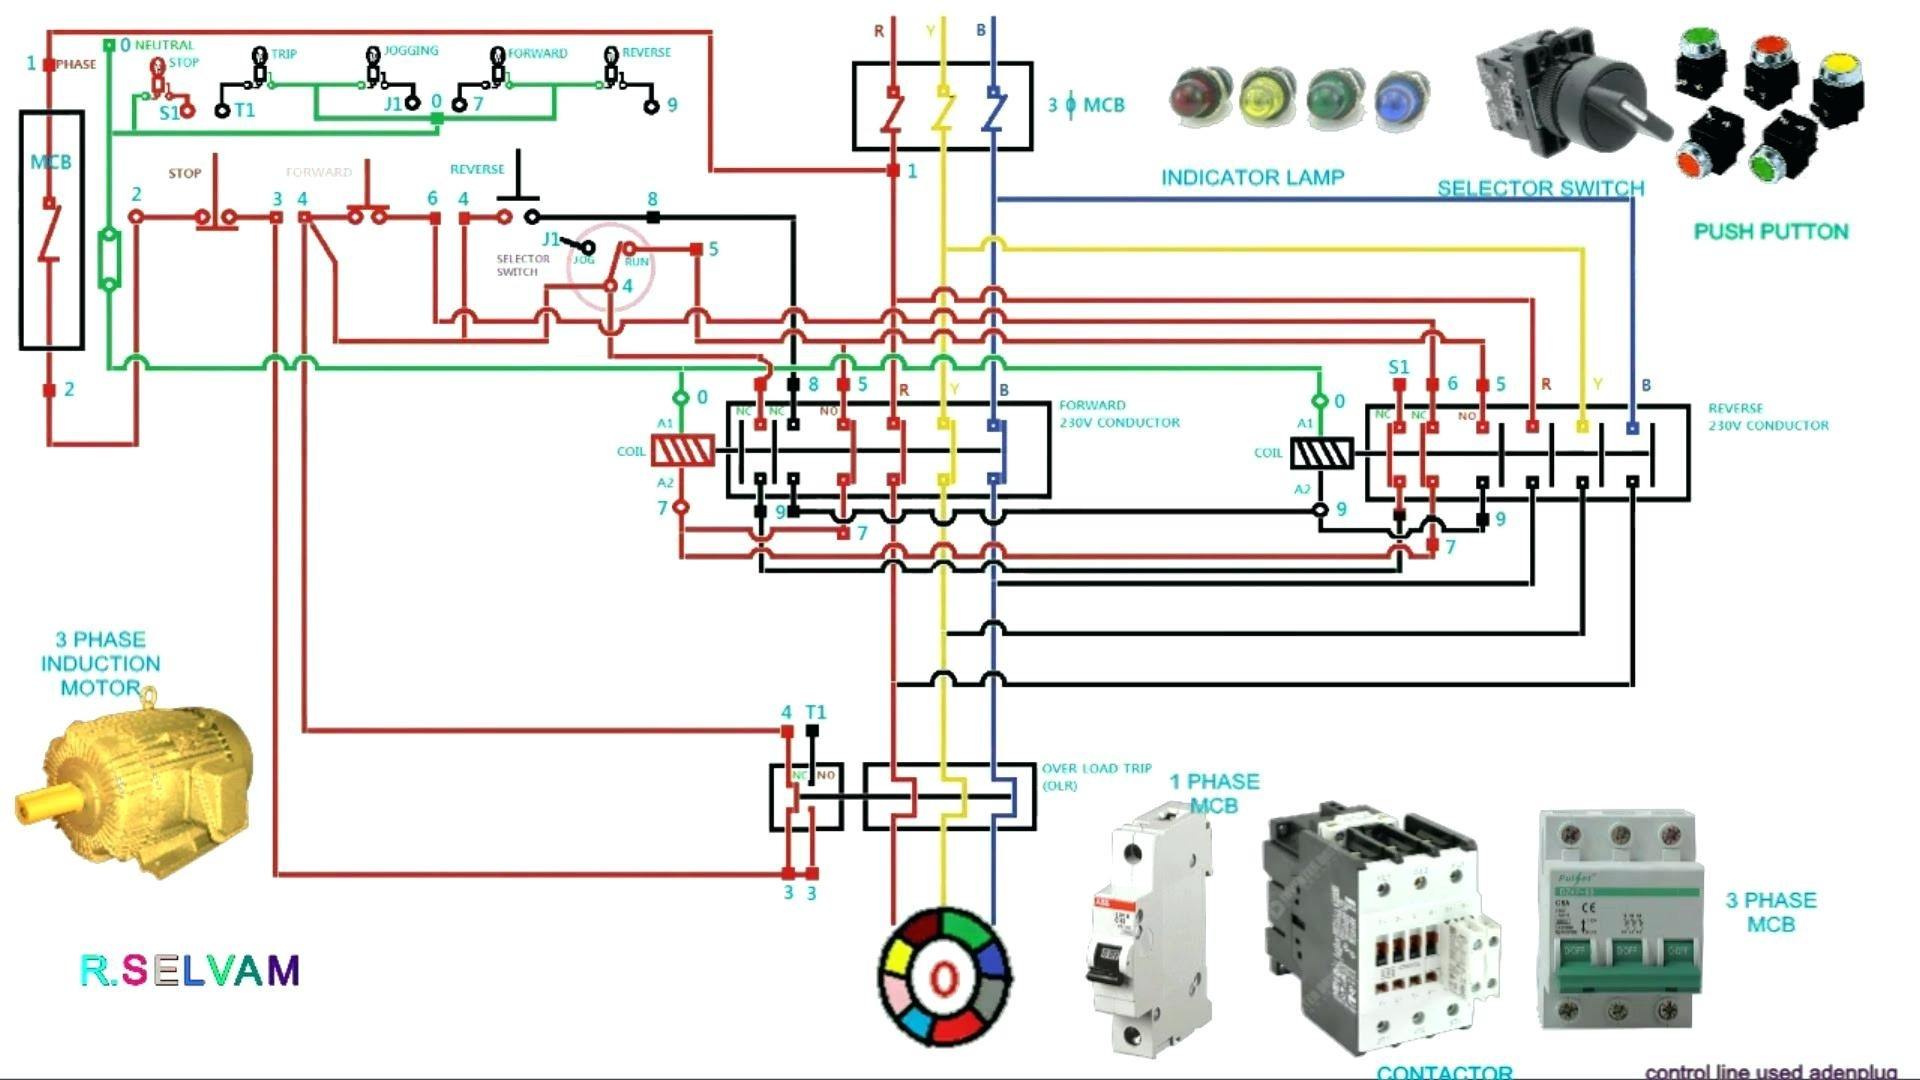 hight resolution of single phase submersible pump starter wiring diagram circuit diagram contactor best 3 phase motor starter